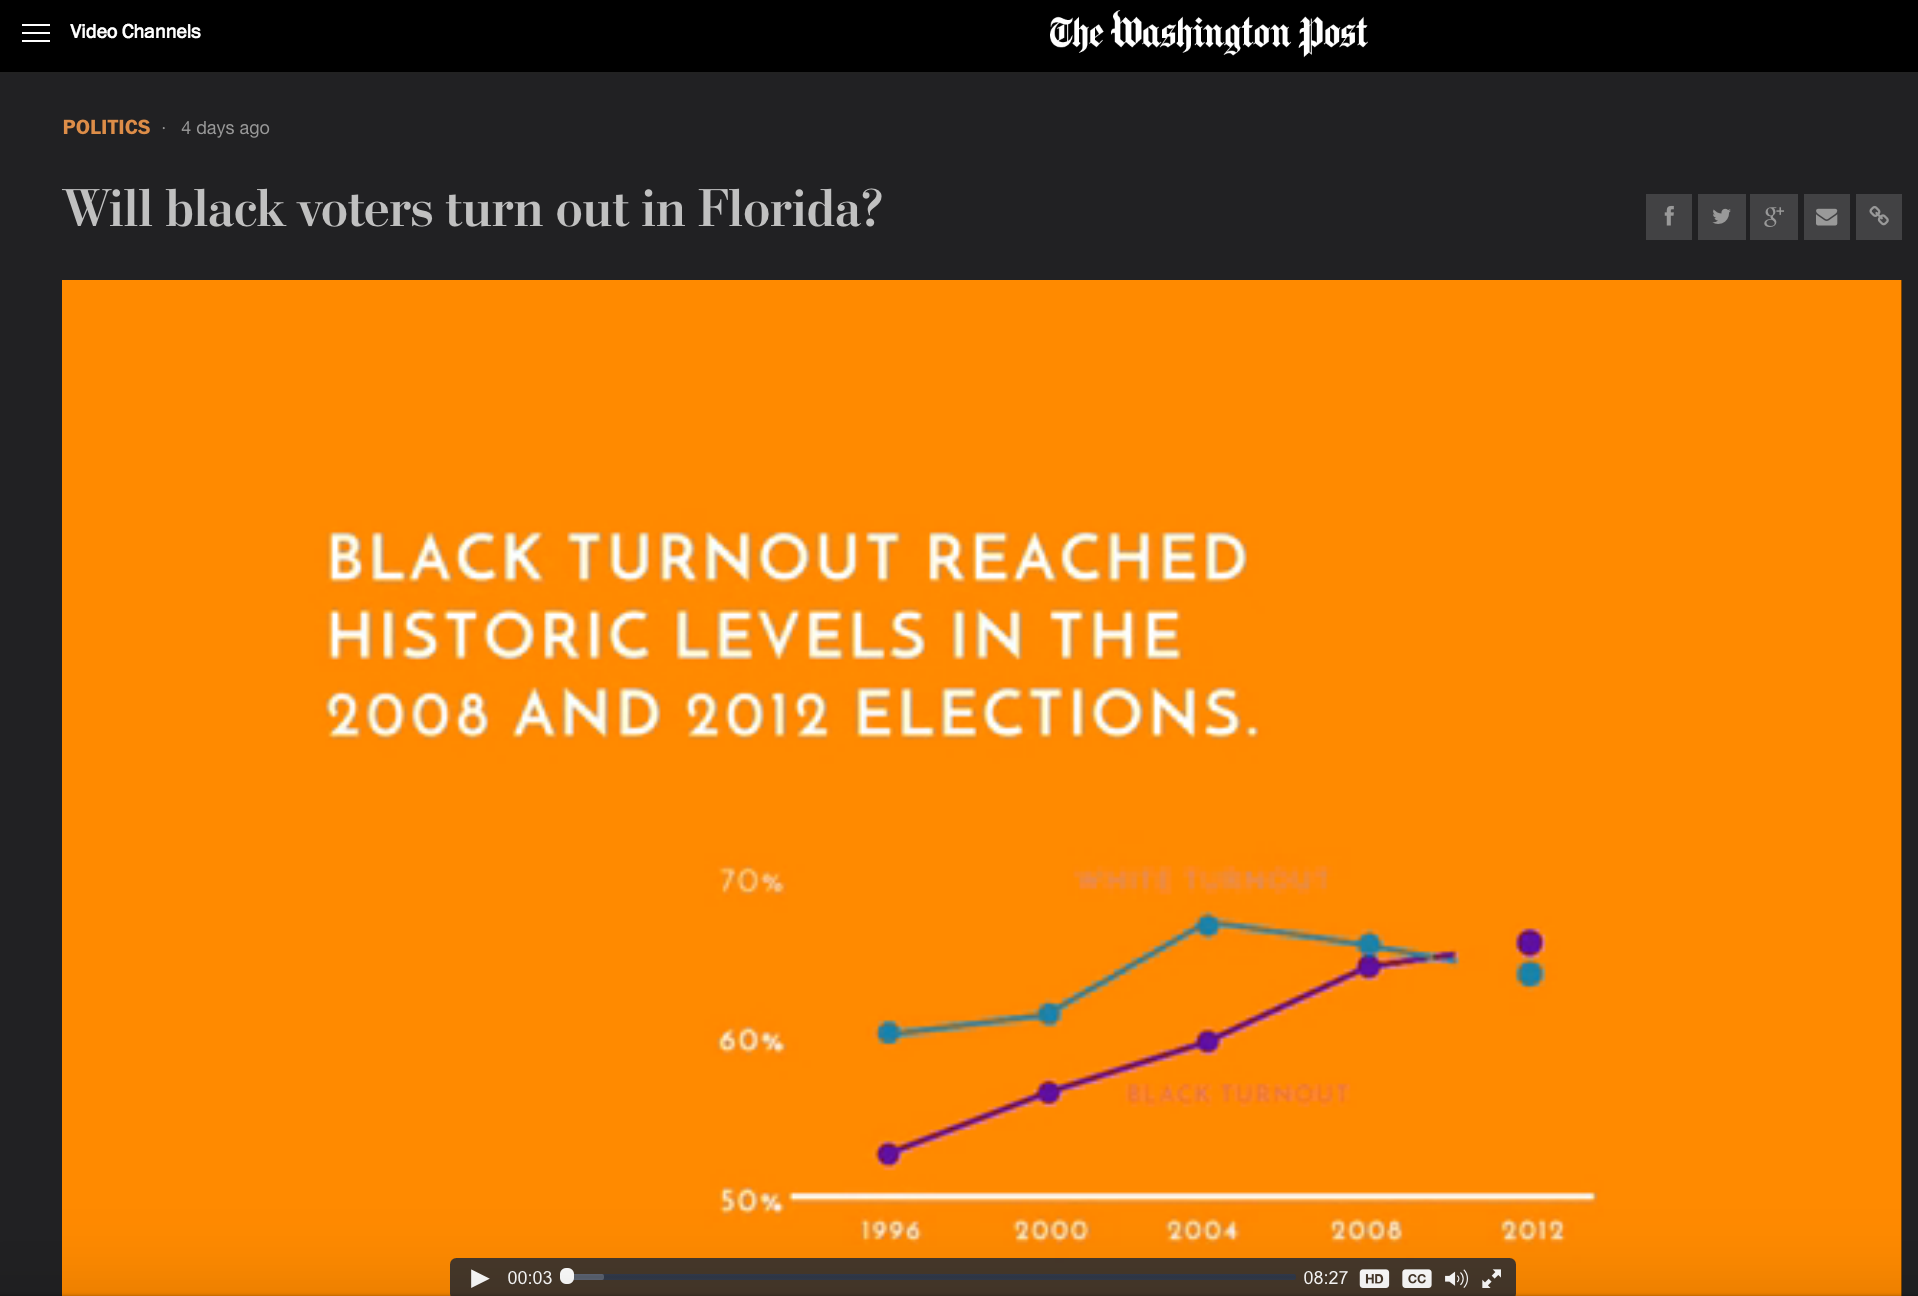 Will black voters turn out in Florida?